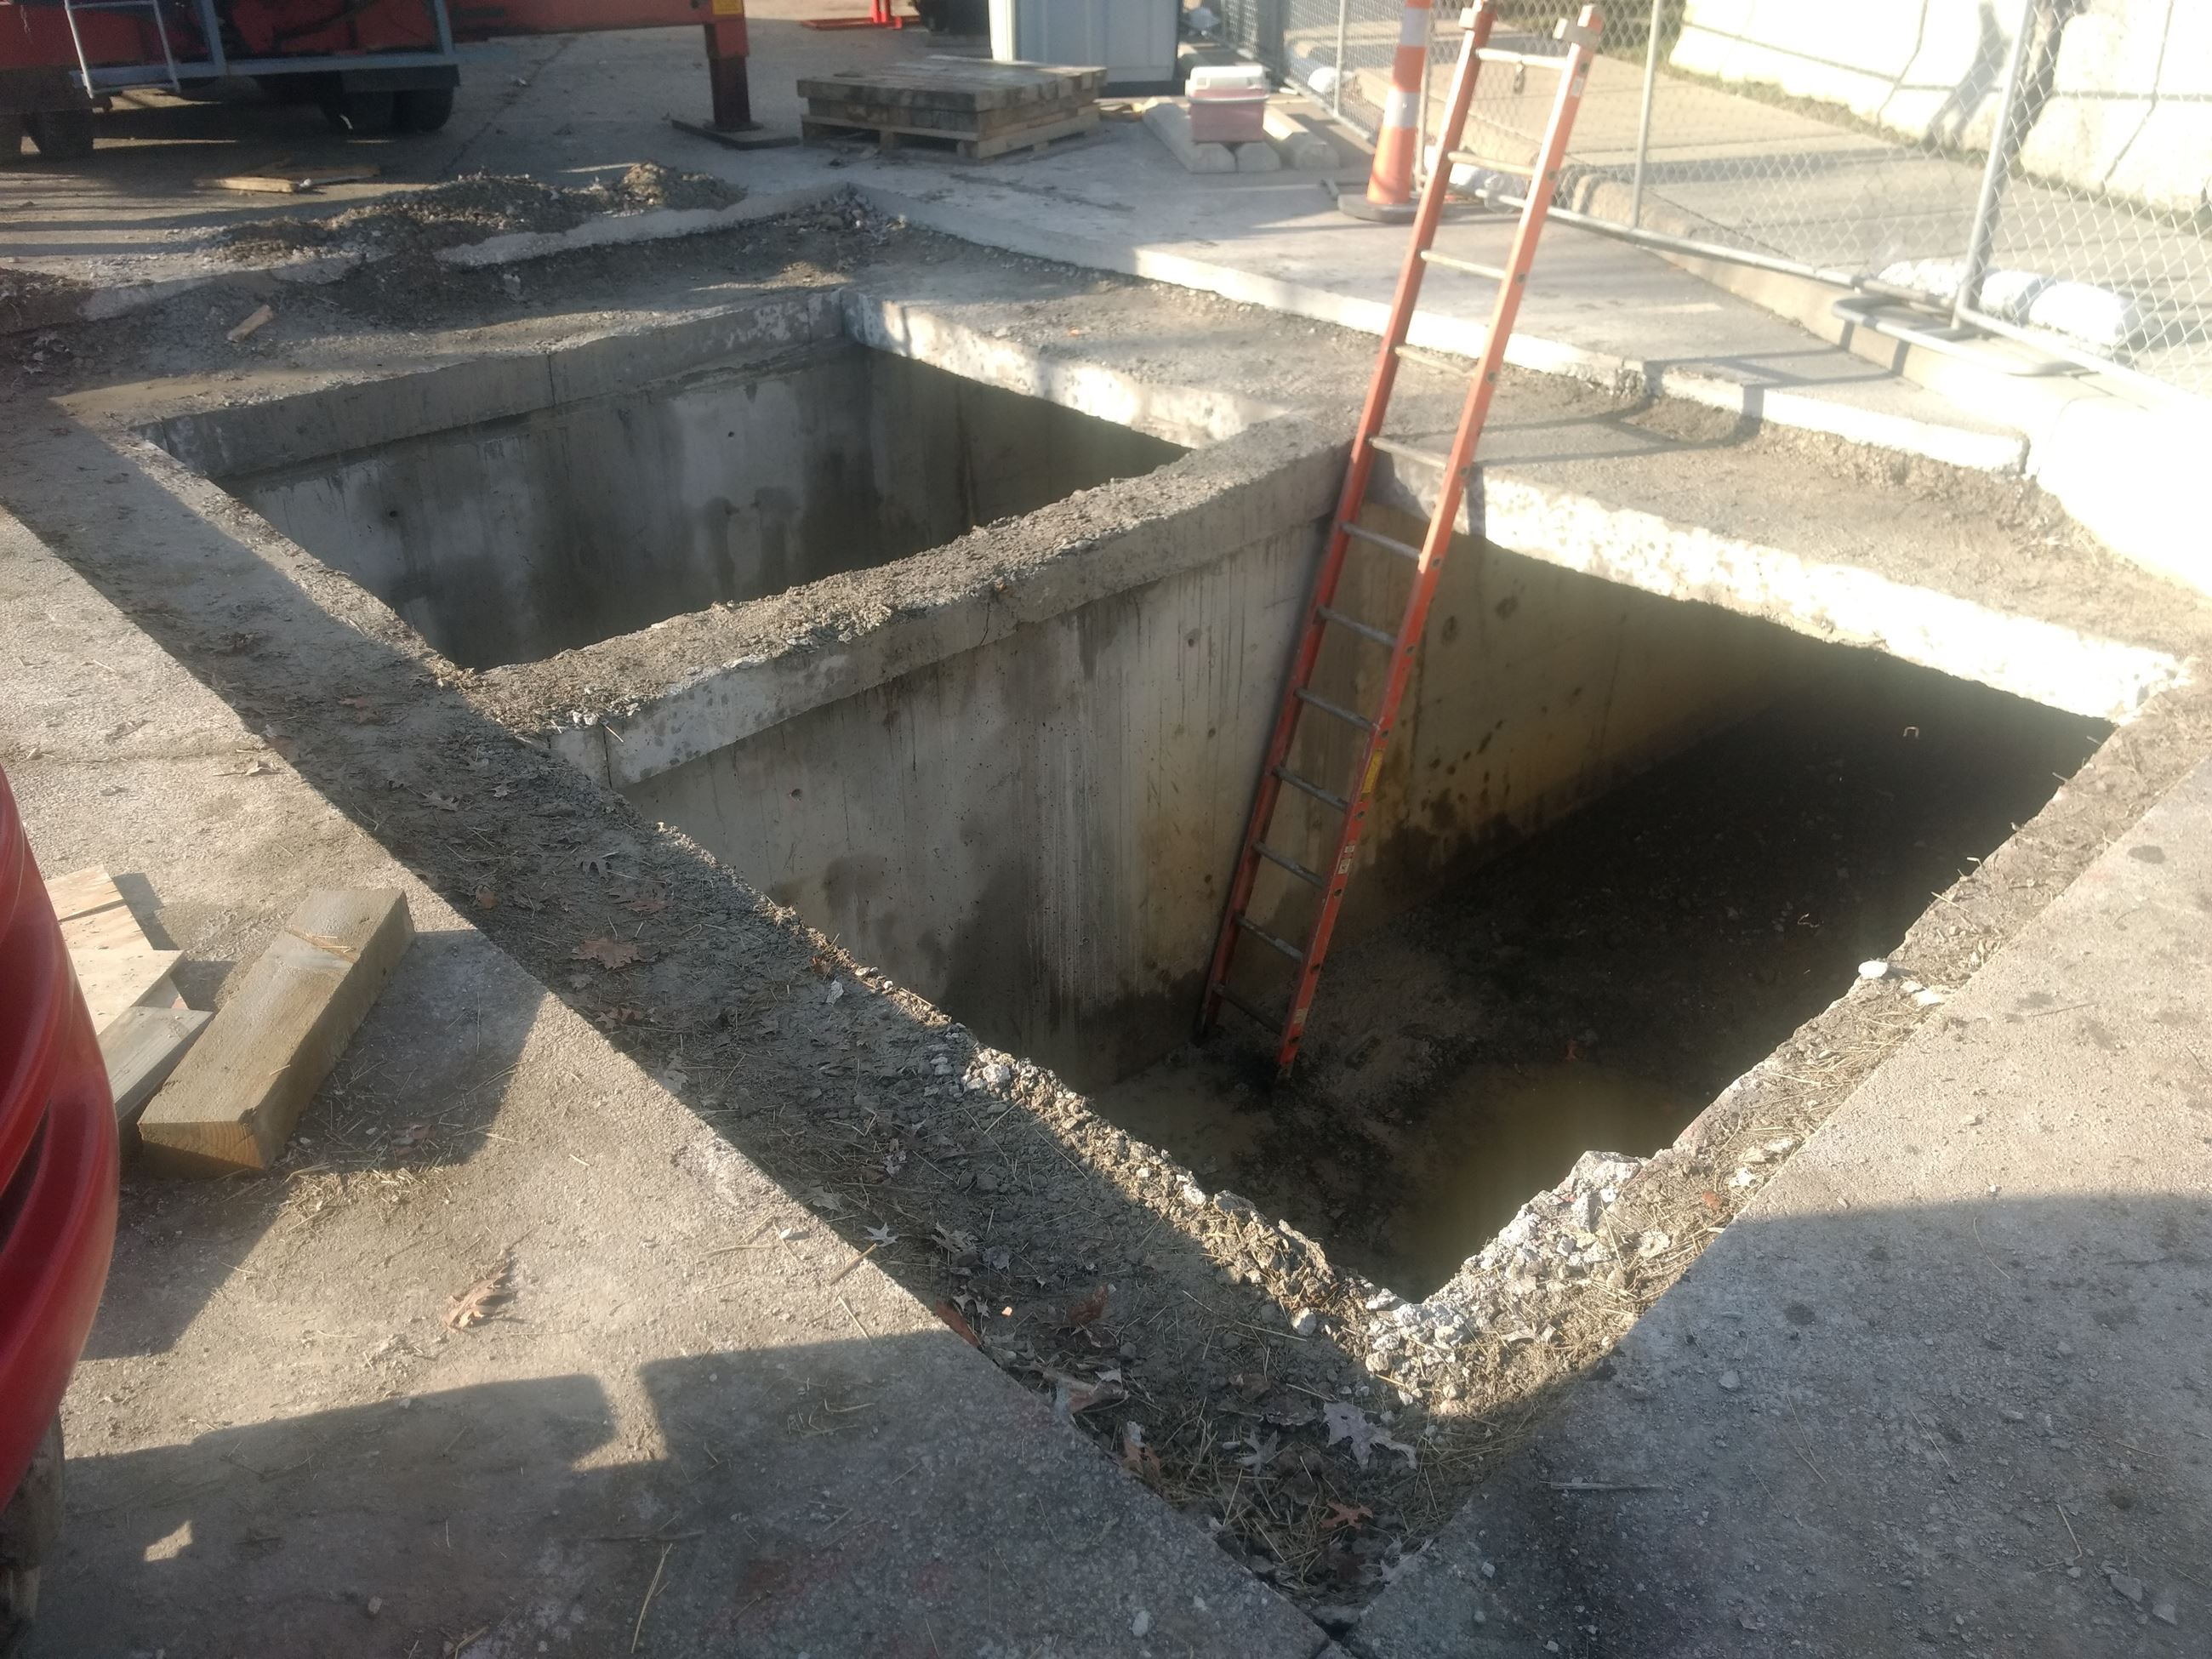 Bainbridge Culvert Access area - all sections removed